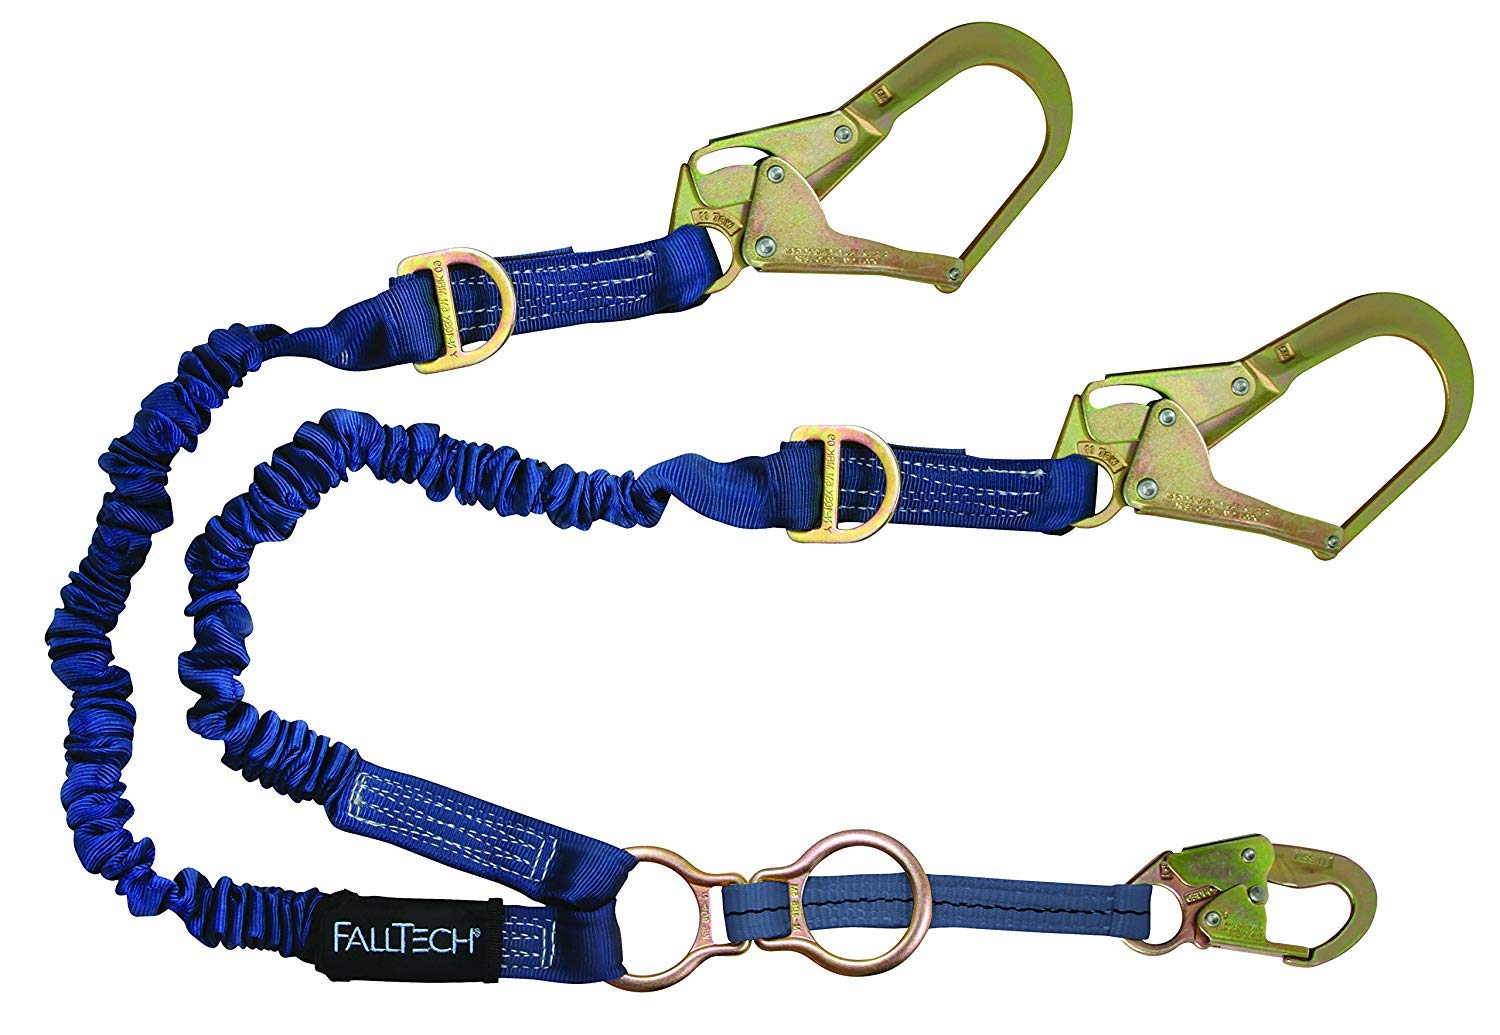 FallTech 8240Y32D2R ElasTech Lanyard-Adjustable Y-Leg, 1 Snap Hook, 2 Rebar Hooks, 1 D-Ring for SRL Attachment/2 Rescue D-Rings, 4' to 6', Blue